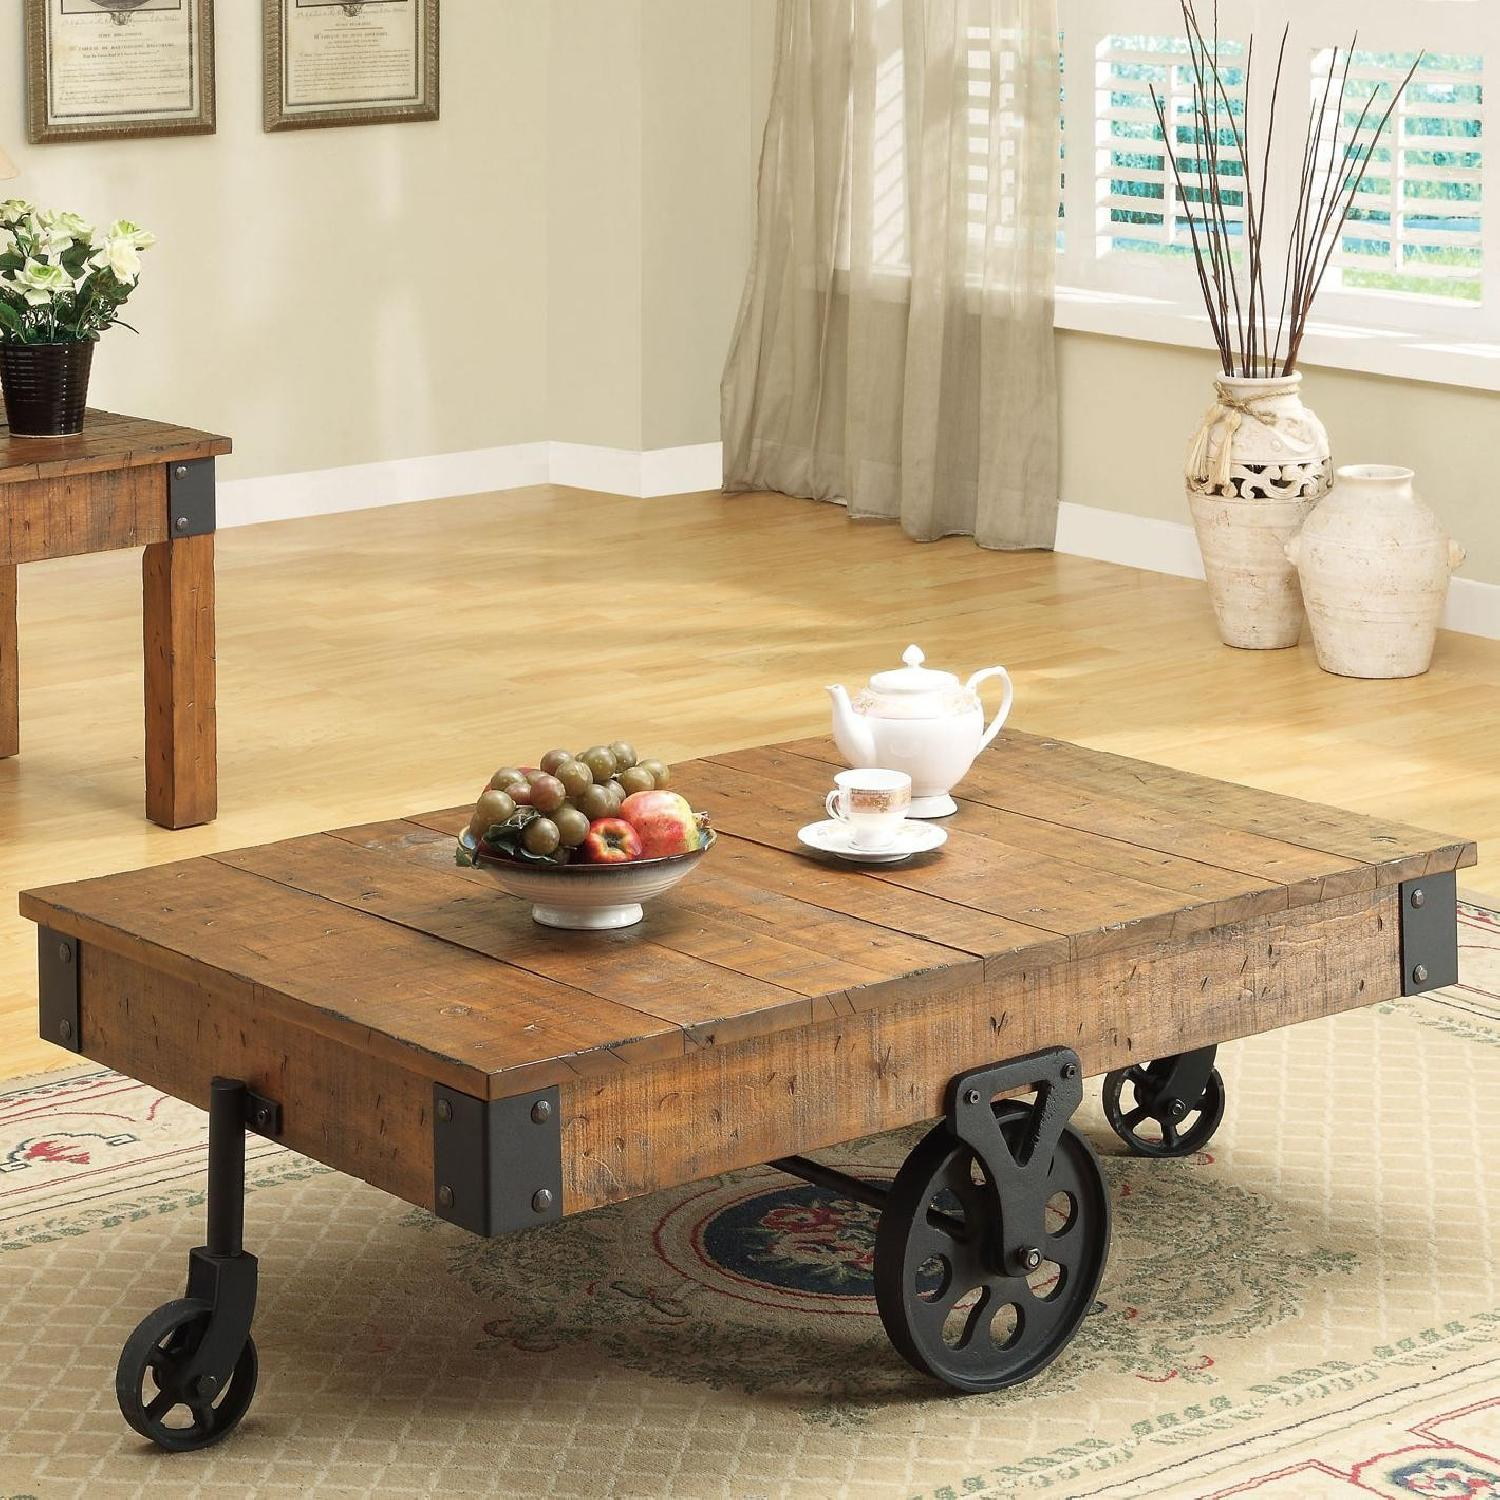 Whimsical Distressed Country Wagon Coffee Table - image-1